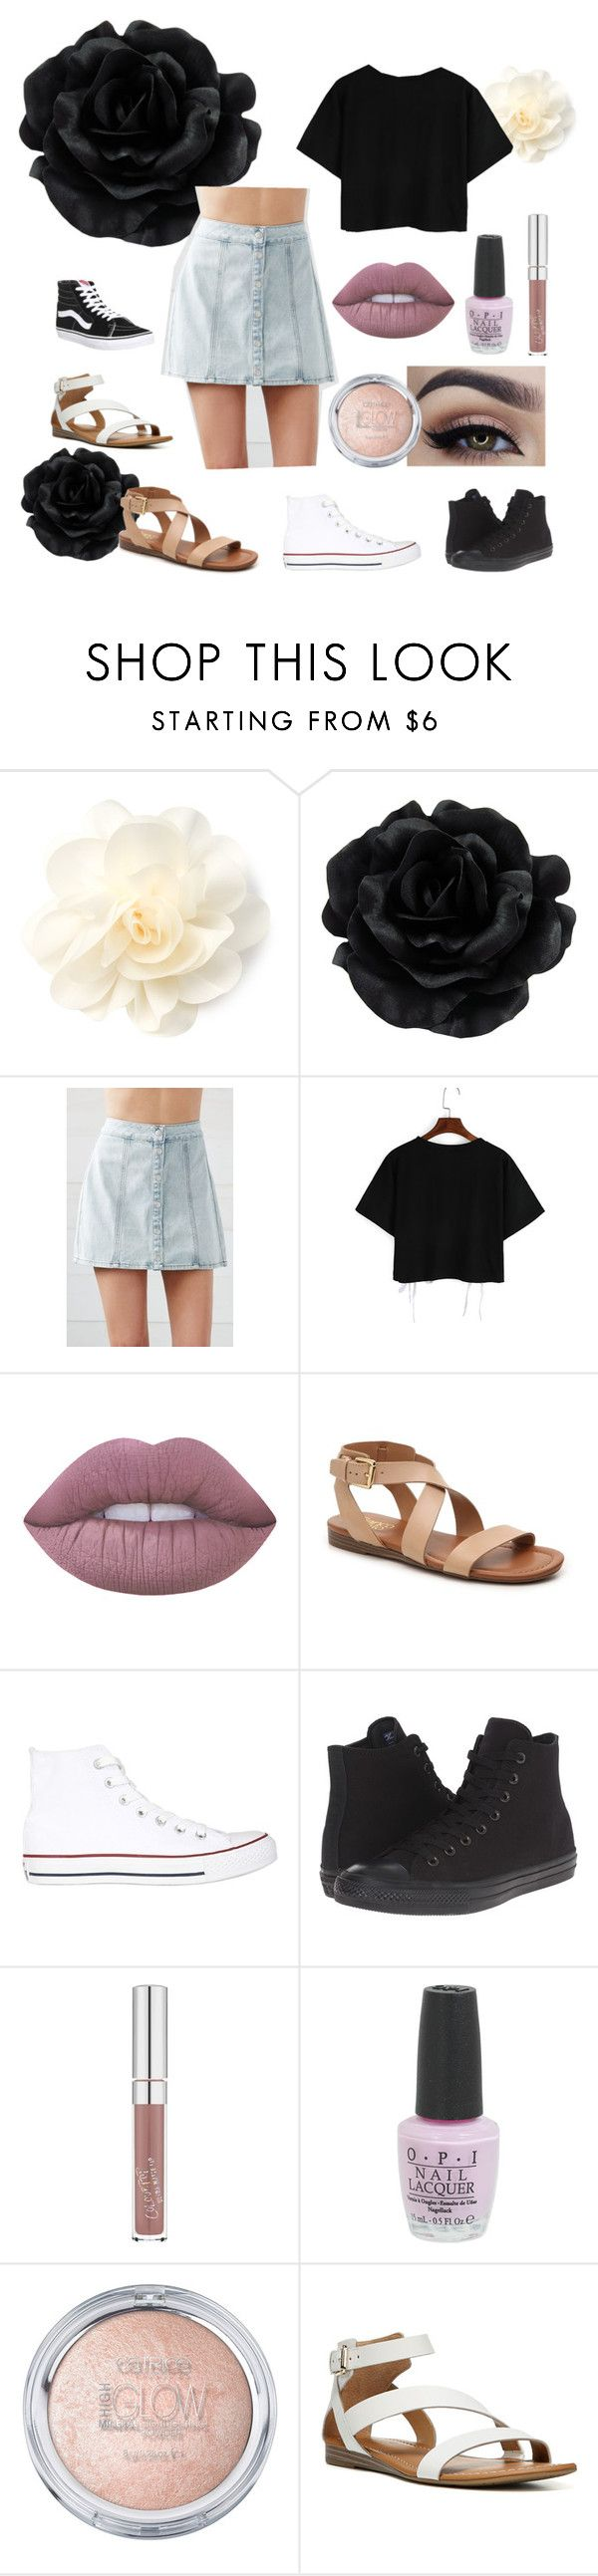 """Untitled #35"" by kiryn on Polyvore featuring Bullhead Denim Co., Lime Crime, Franco Sarto, Converse, OPI and Vans"